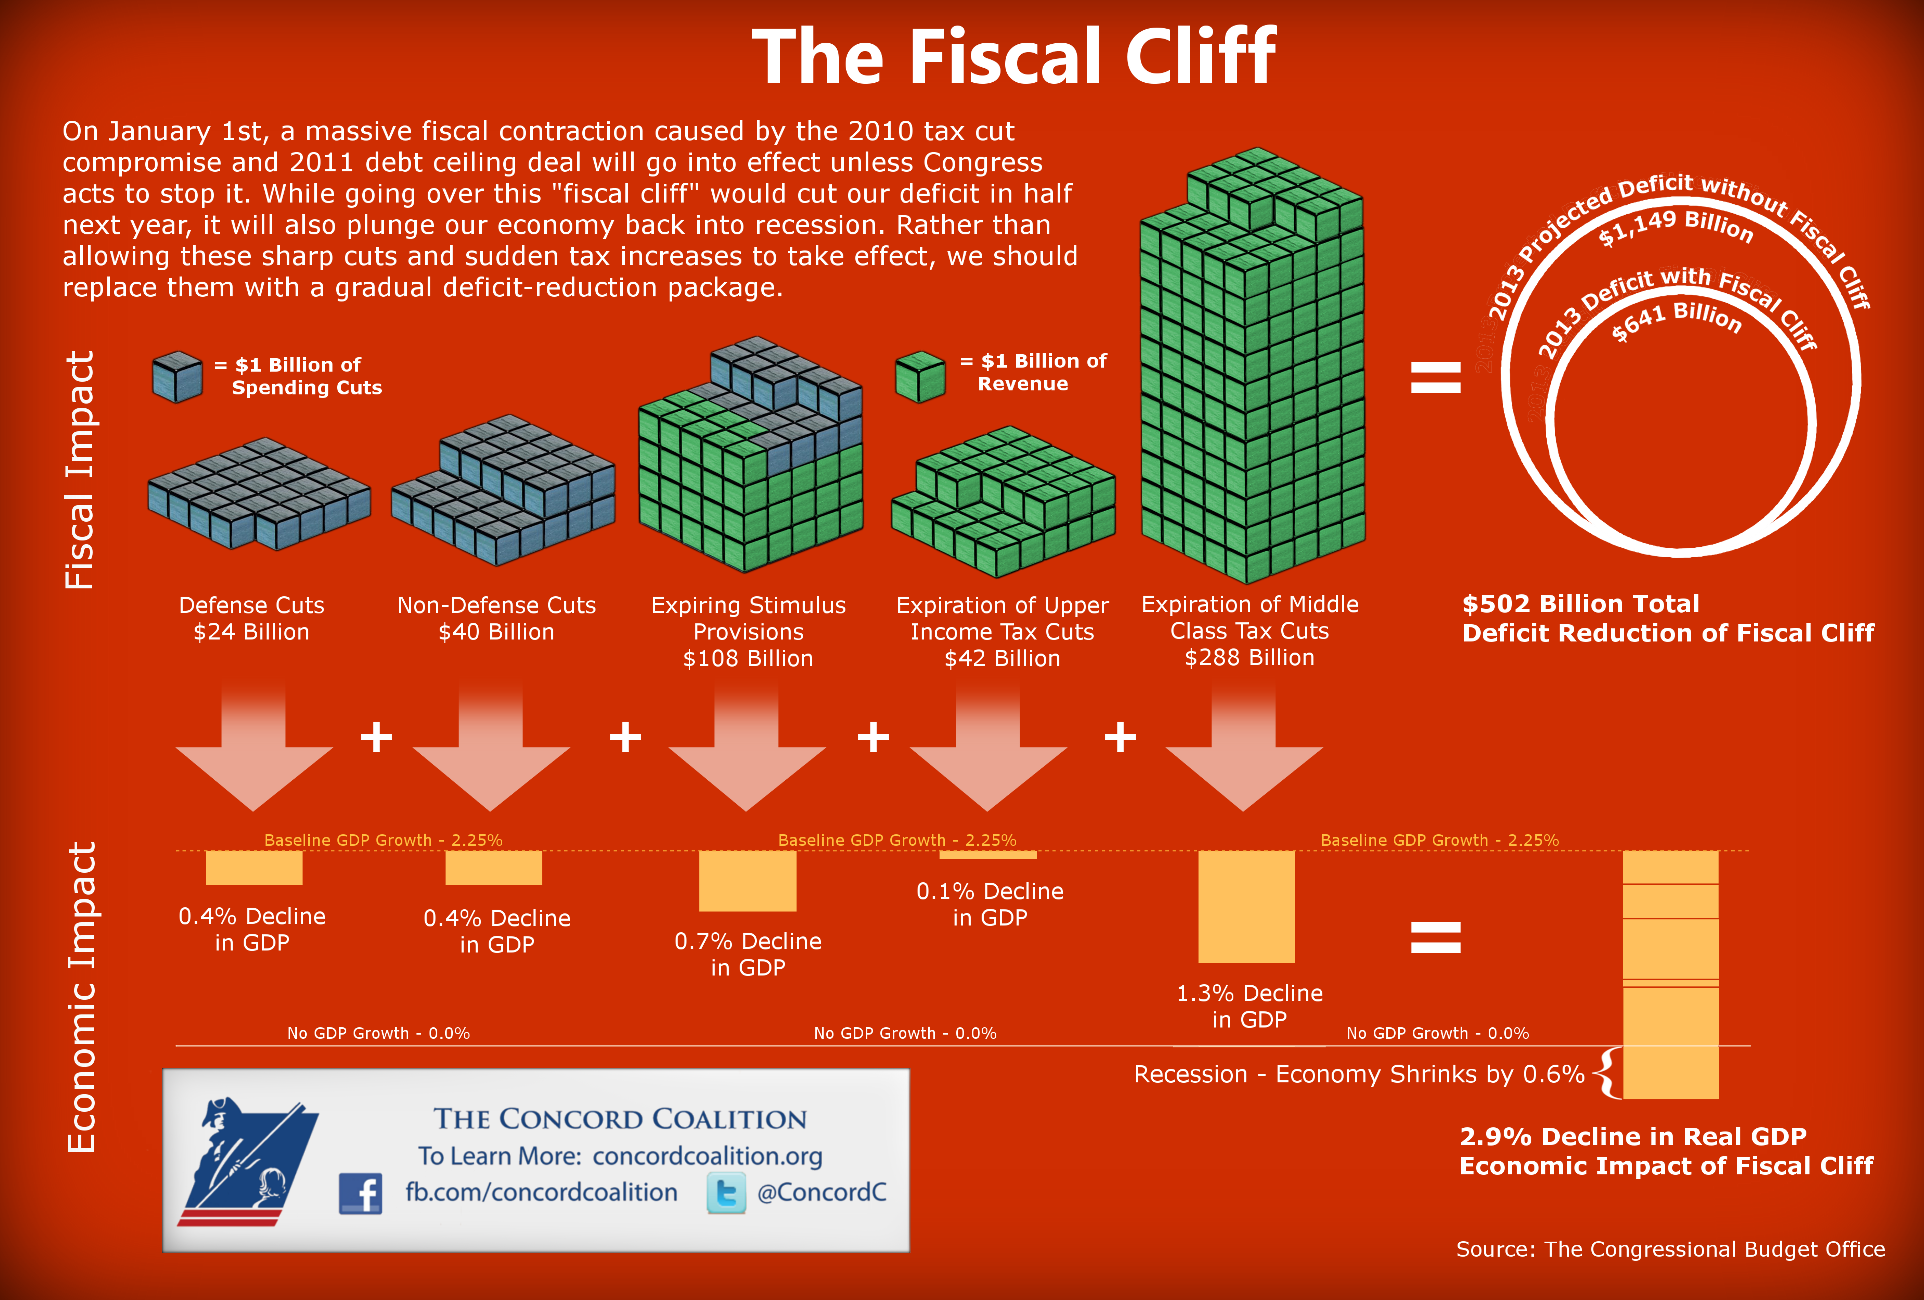 The Fiscal Cliff - Describing the effect of the 2011 debt ceiling